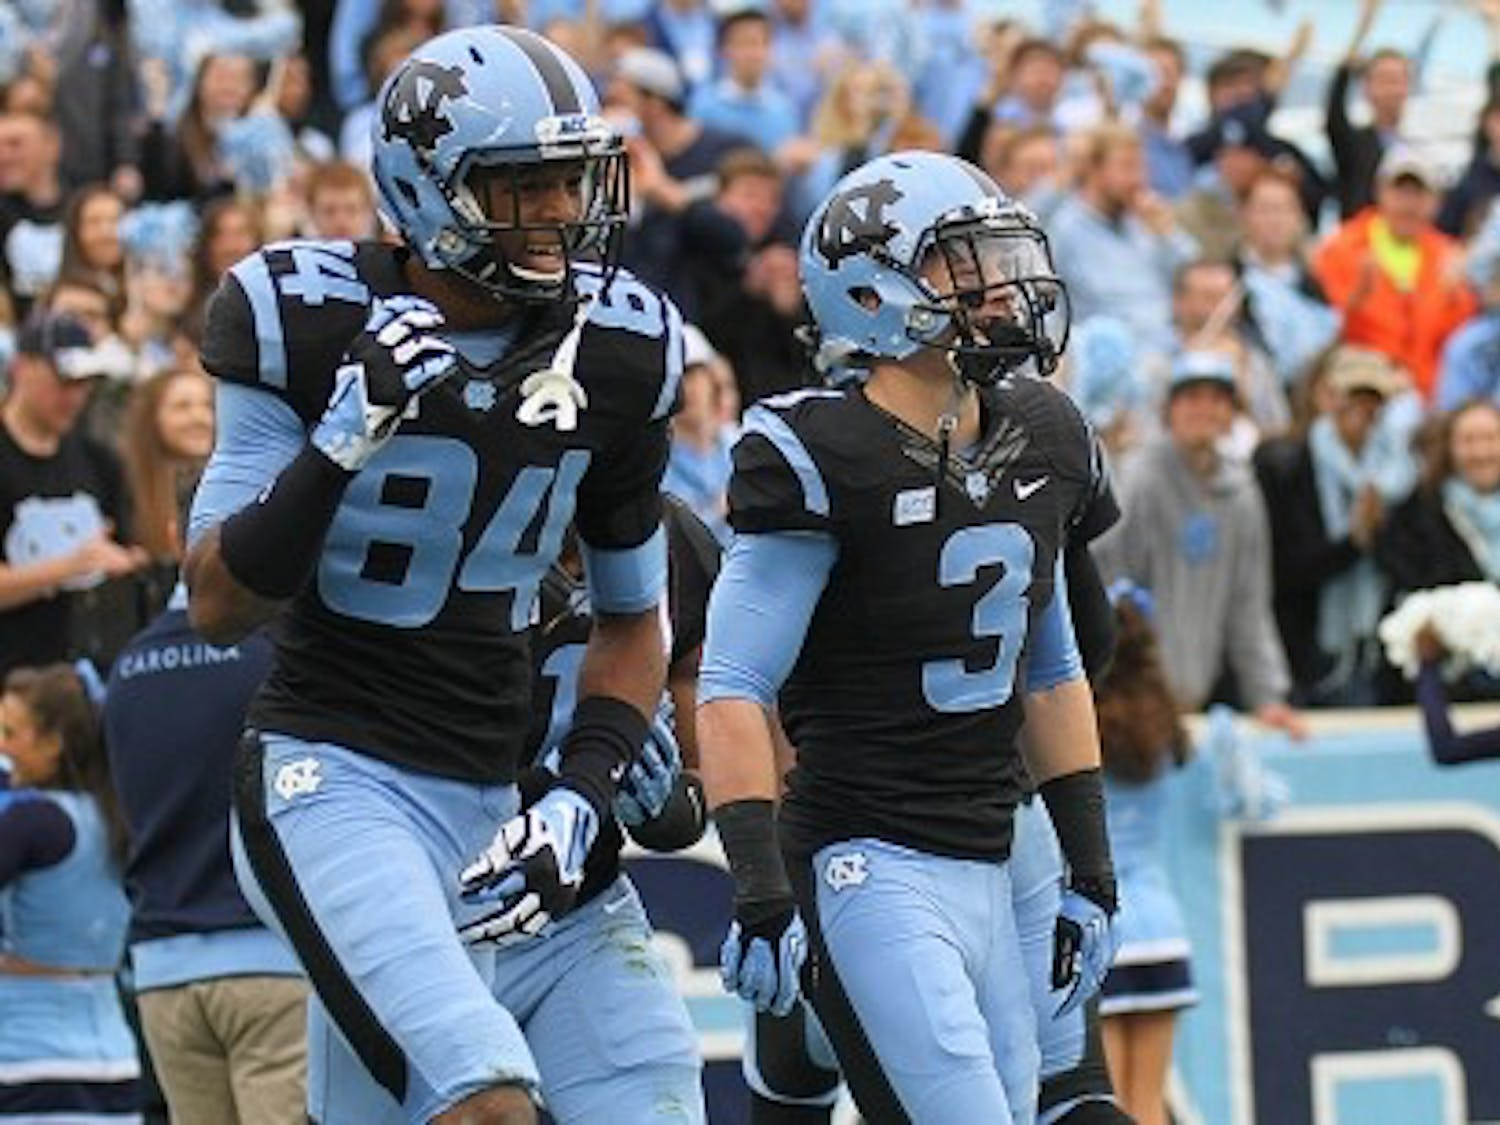 Former North Carolina wide receivers Bug Howard (84) and Ryan Switzer (3) celebrate after a touchdown against Old Dominion in 2013.